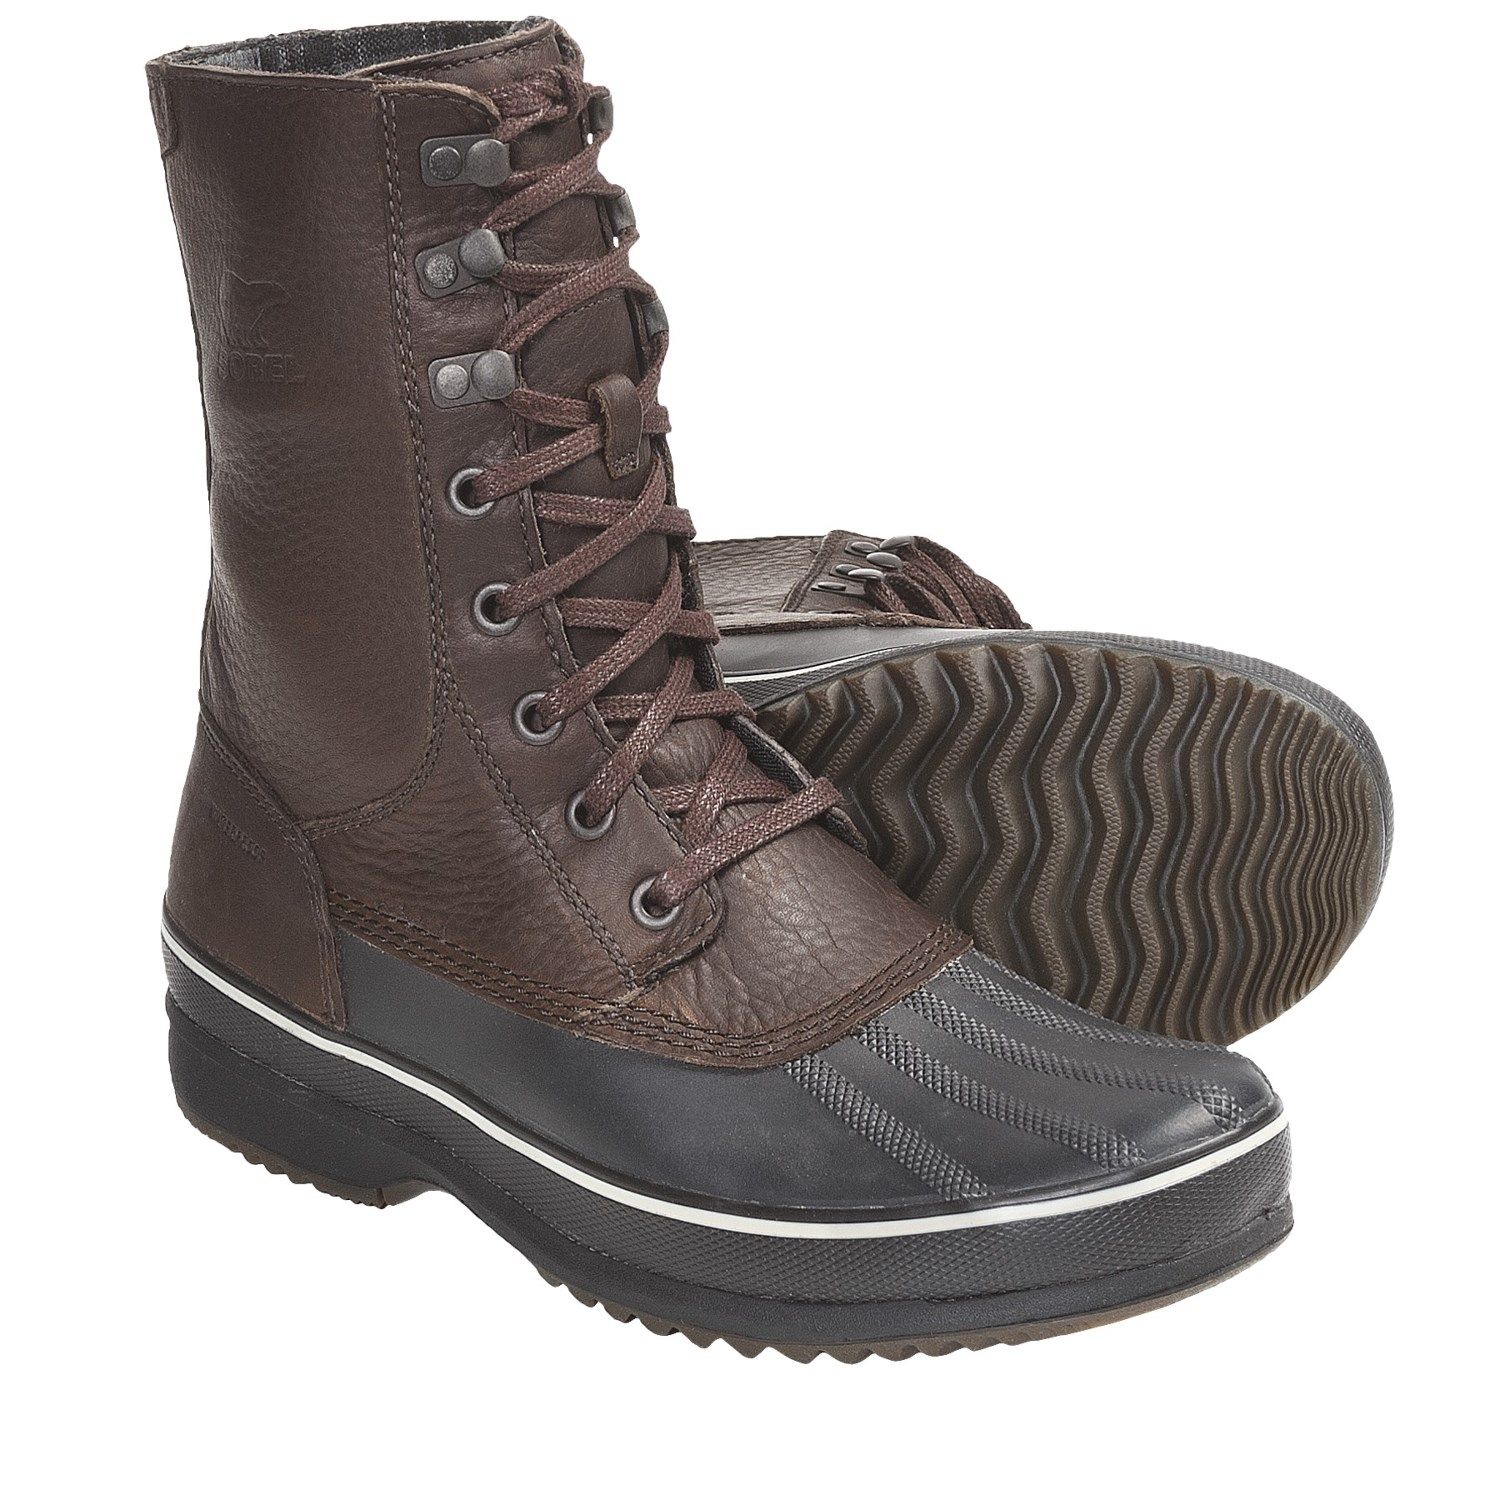 Mens Winter Boots 13 Wide | Santa Barbara Institute for